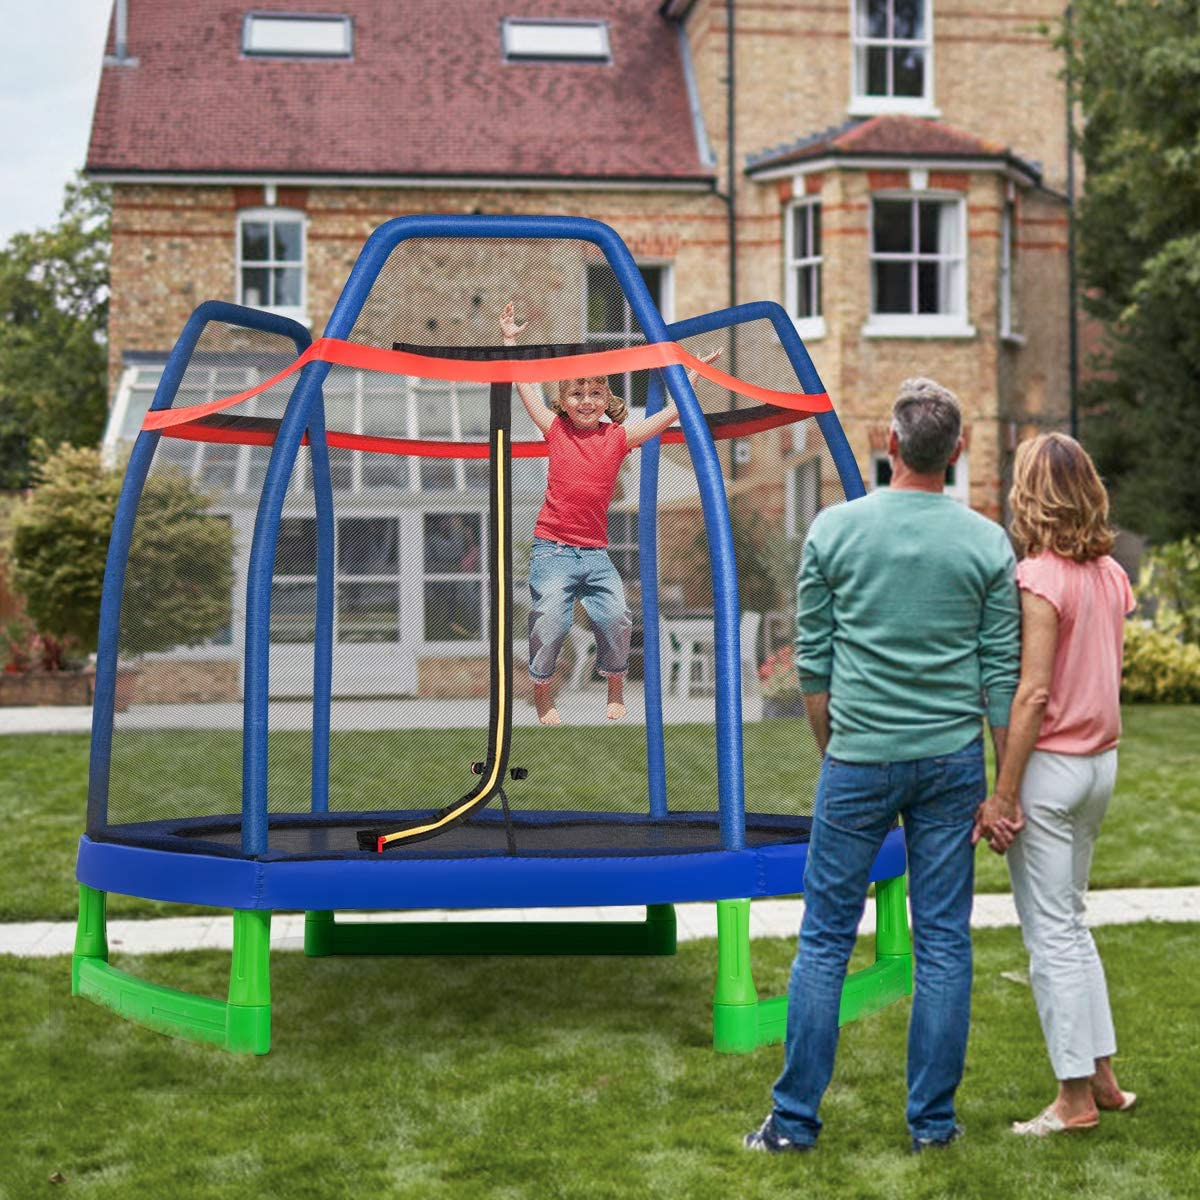 This is an image of GYMAX 7ft Kids Trampoline, Jumping Trampoline with Safety. Both parents are holding hands while observing the little boy jumping inside the trampoline.